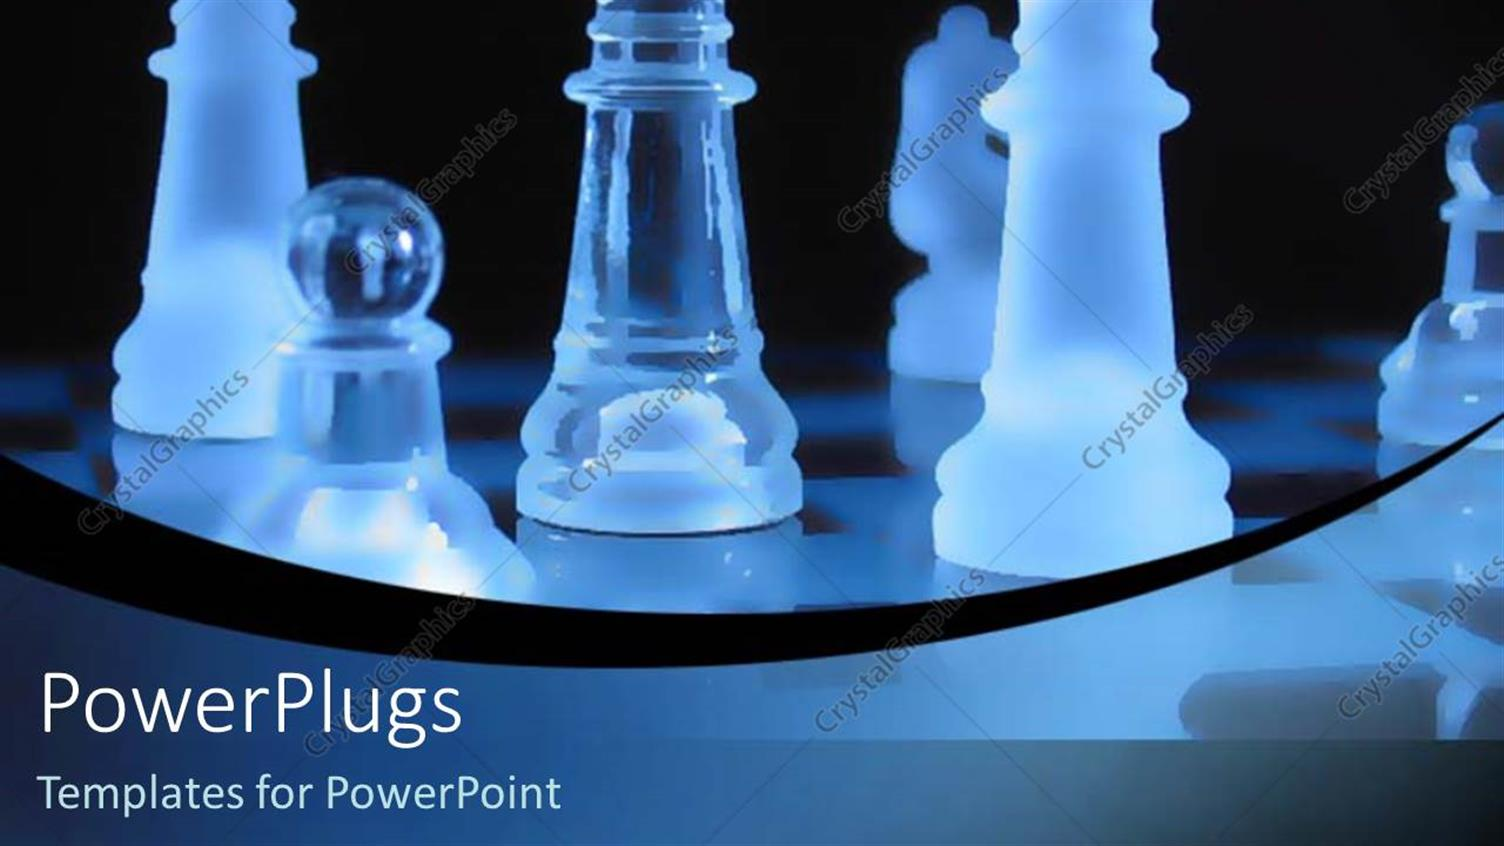 PowerPoint Template Displaying Glass Chess Pieces with Blue Lighting Over a Black Background